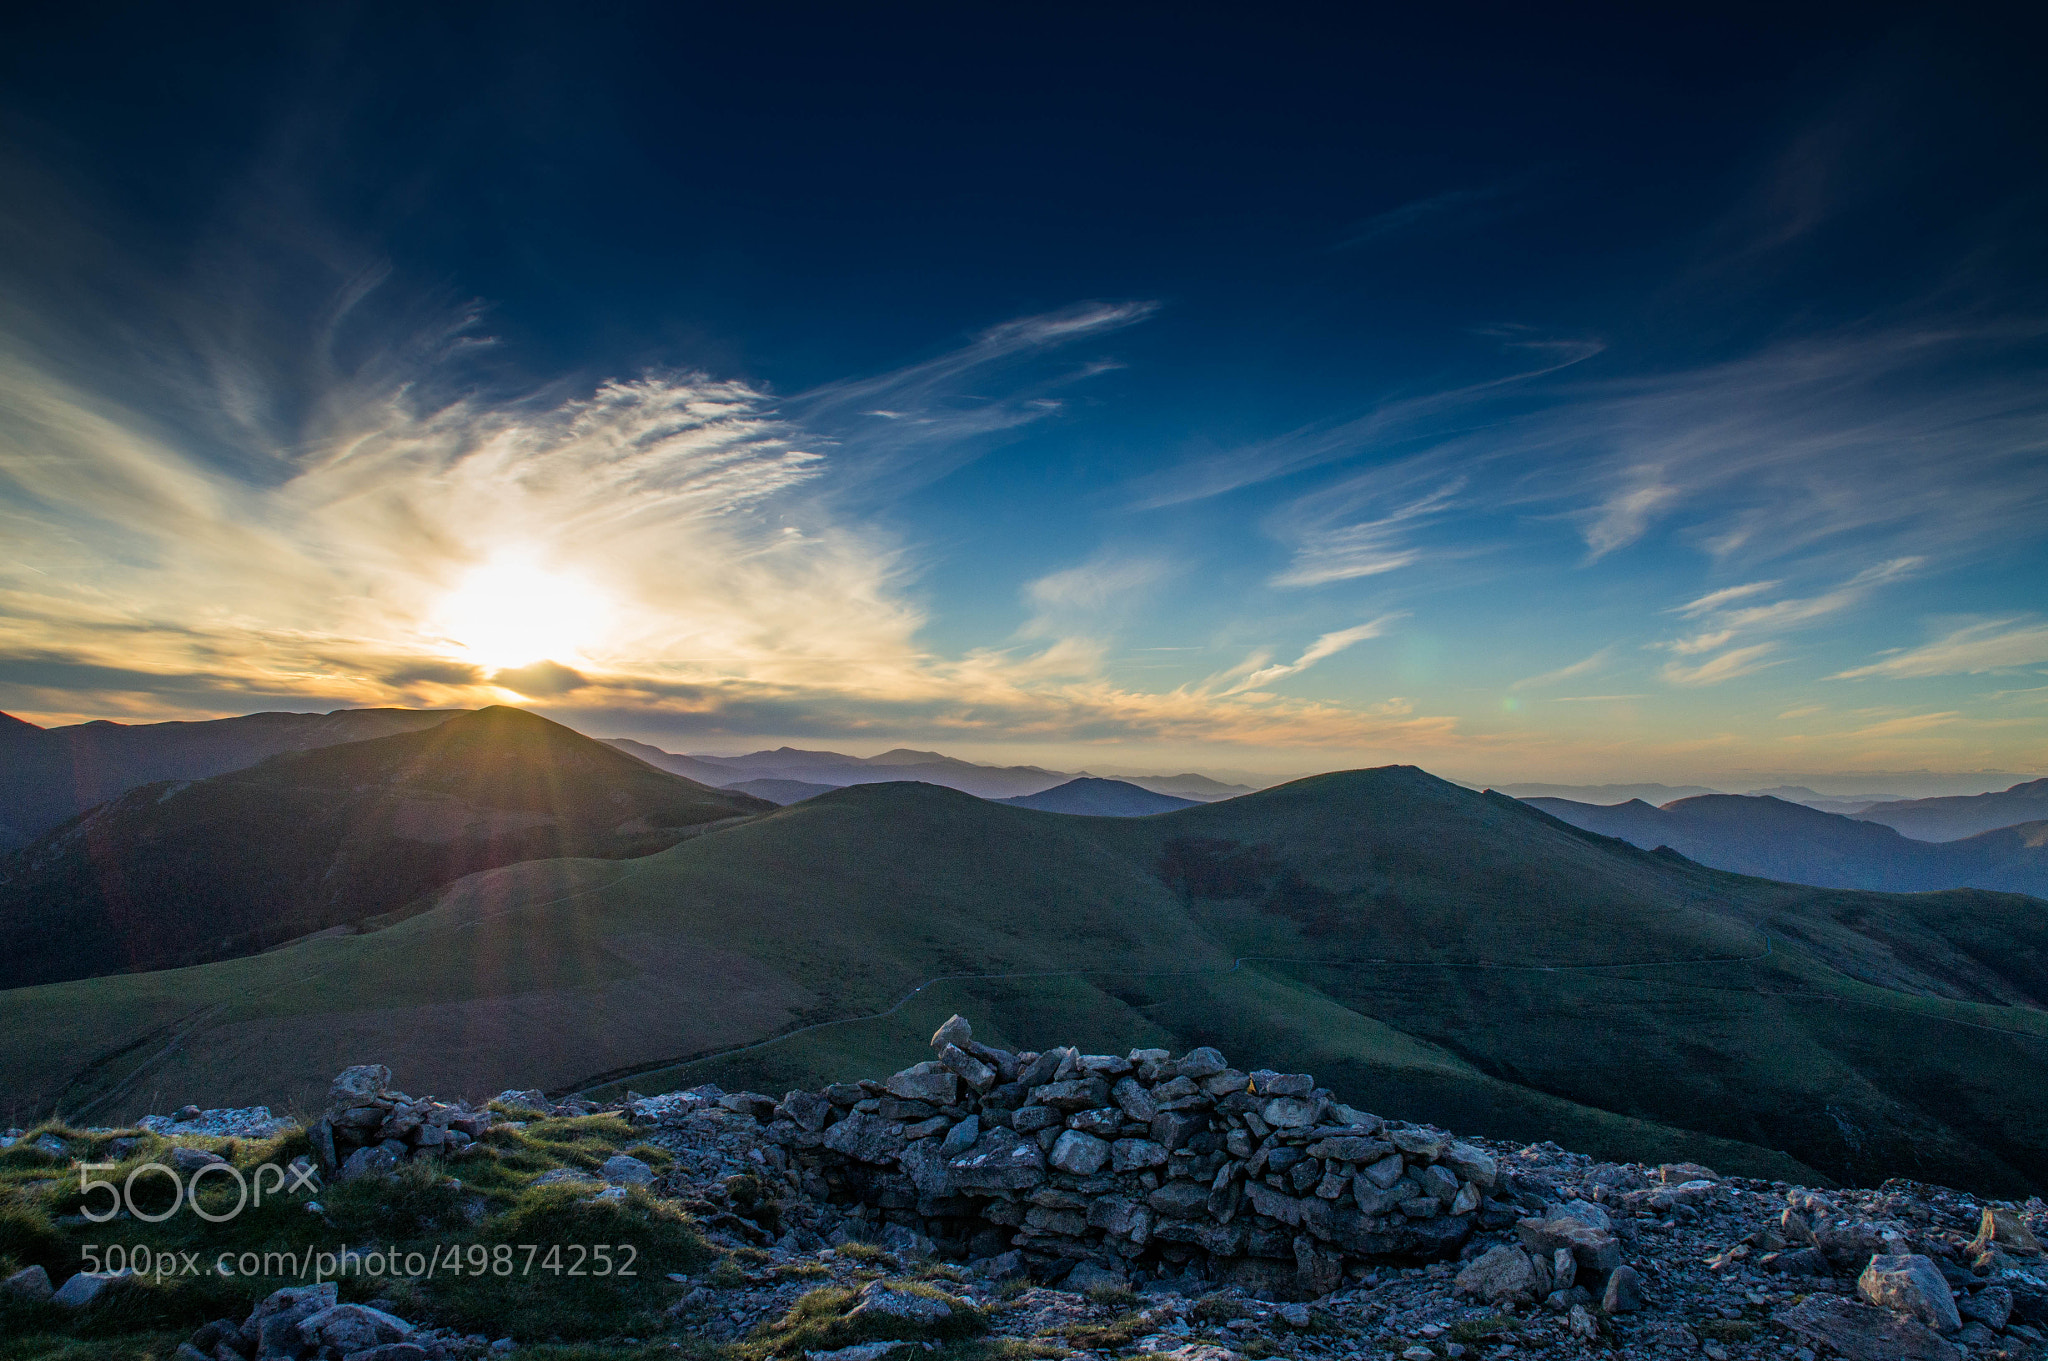 Photograph Sunset from Urkulu summit by Lluís Grau on 500px